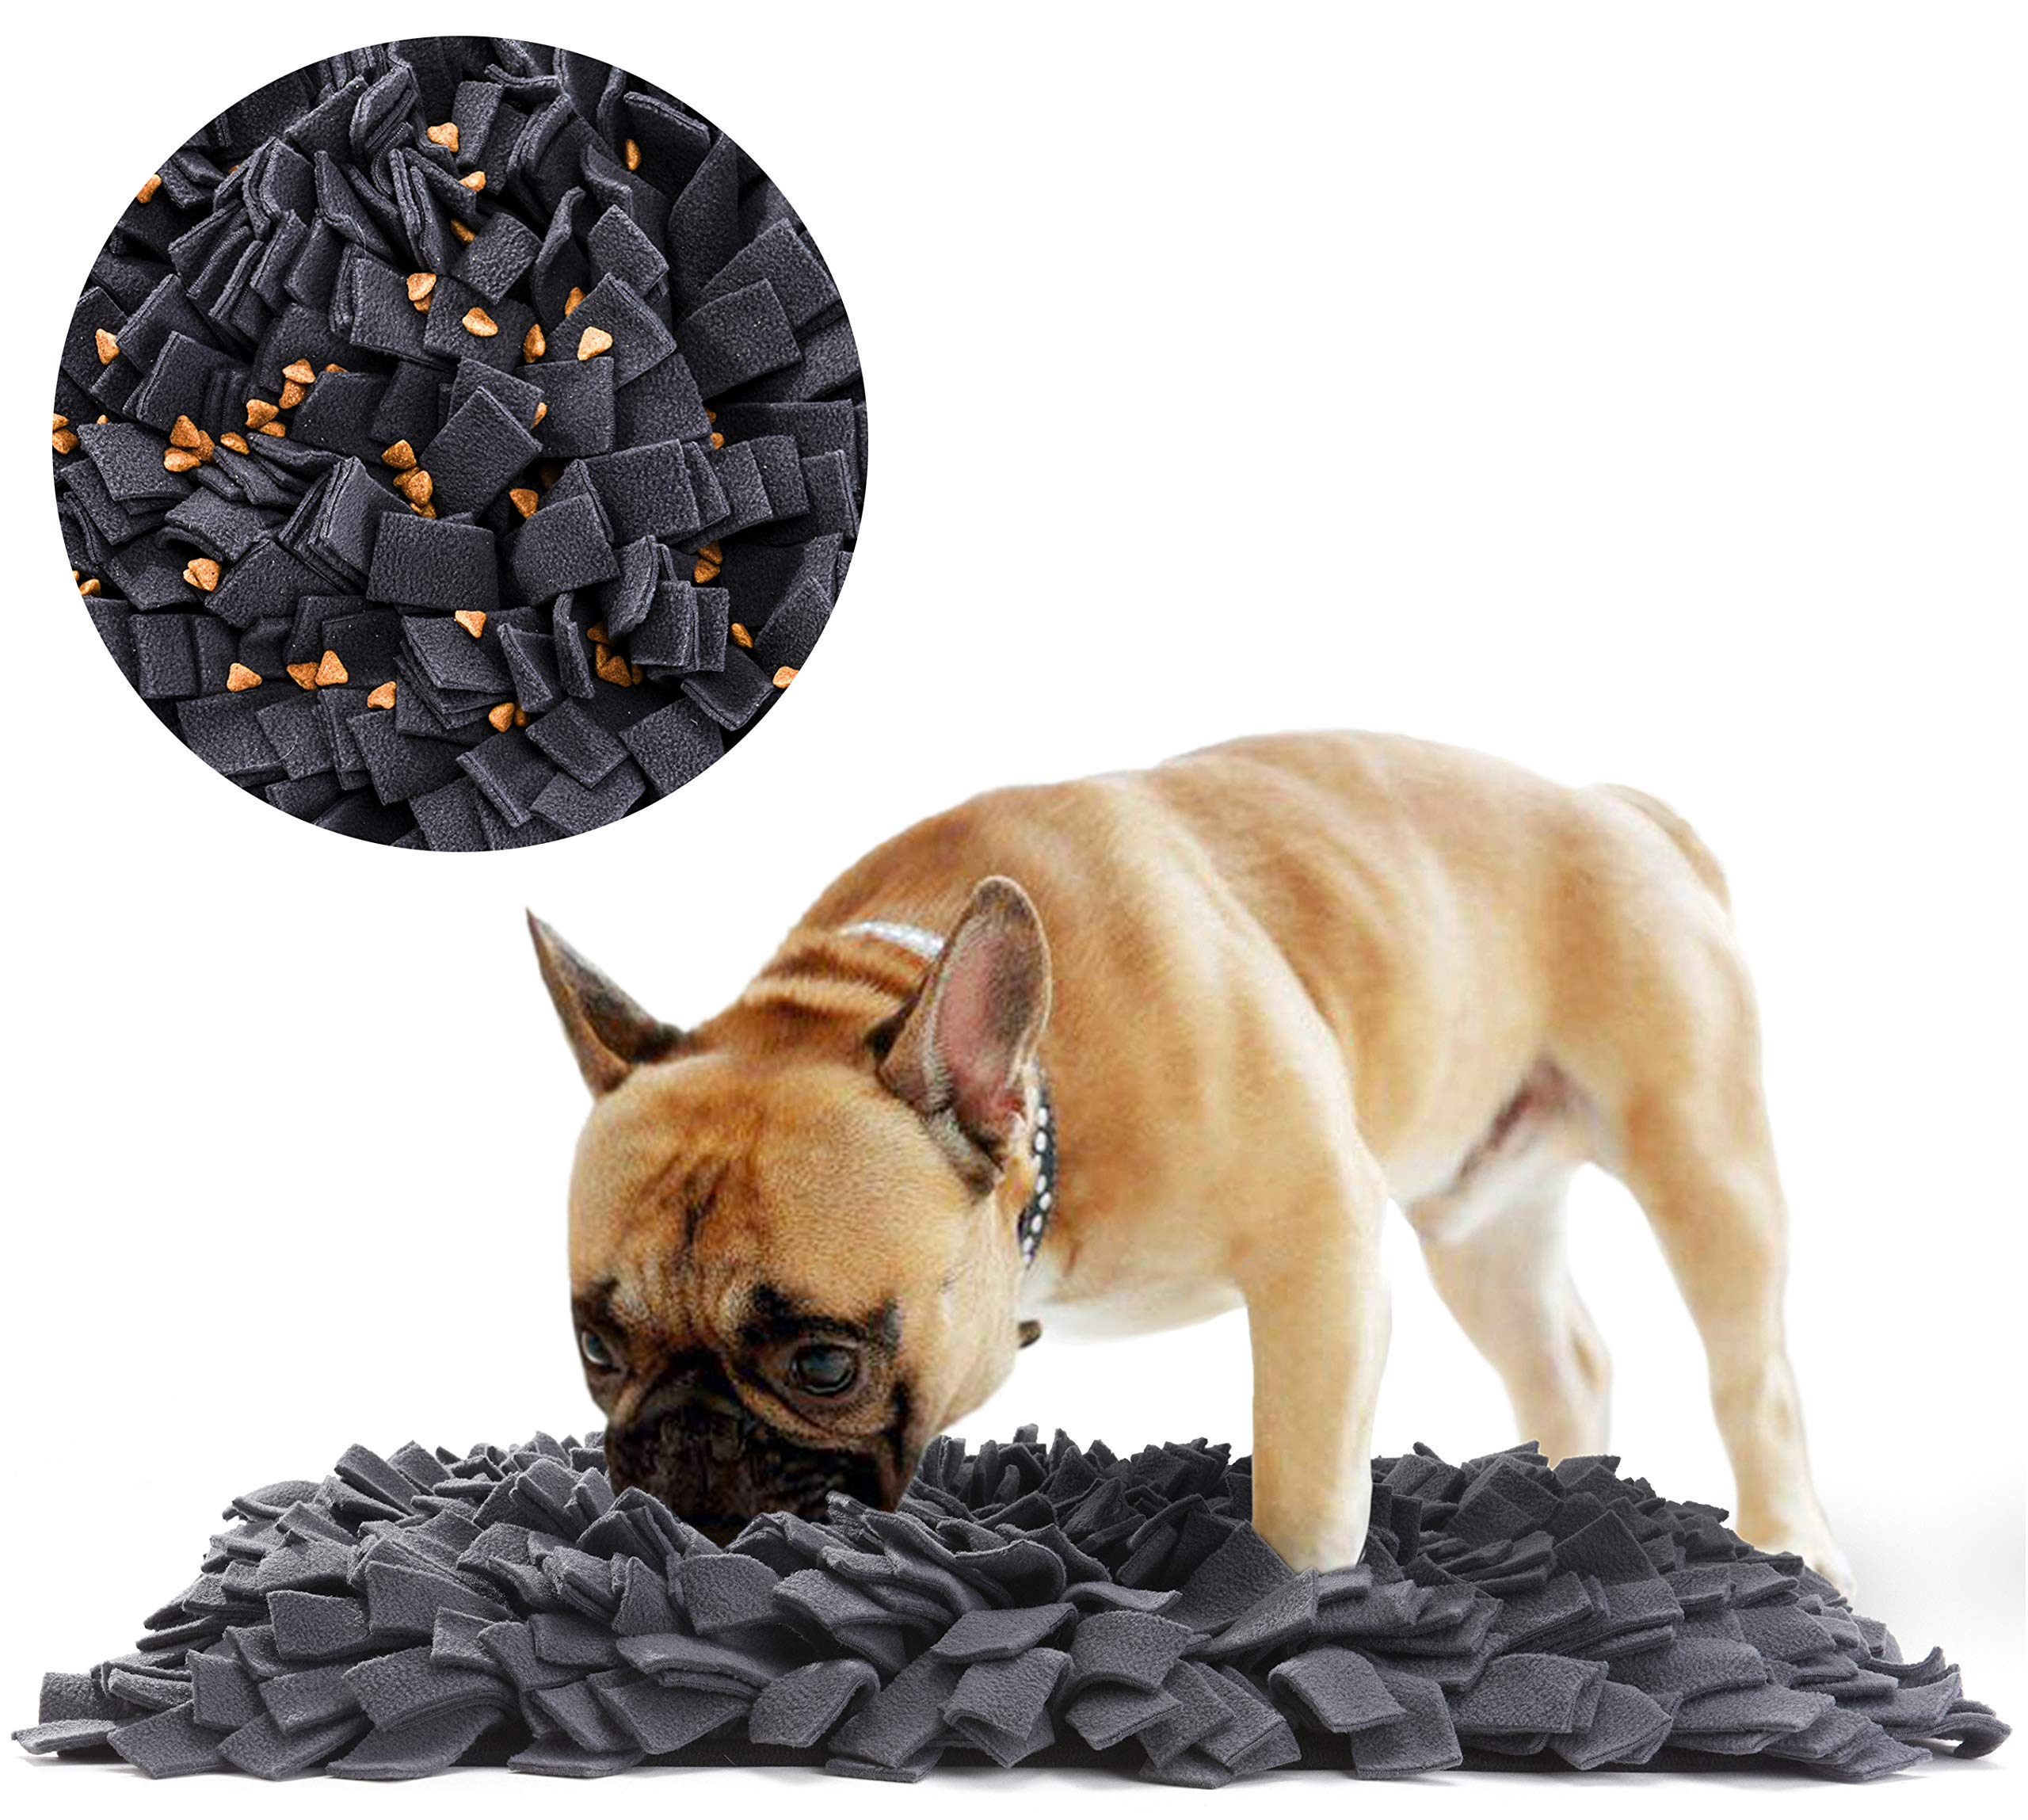 Tamu style Dog Snuffle Mat for Feeding, Hunting, Foraging (12½'' x 18½'') Playful Food and Treat Surface & Small, Medium, Large Breed Pets & Durable, Reusable, Machine Washable by Tamu style